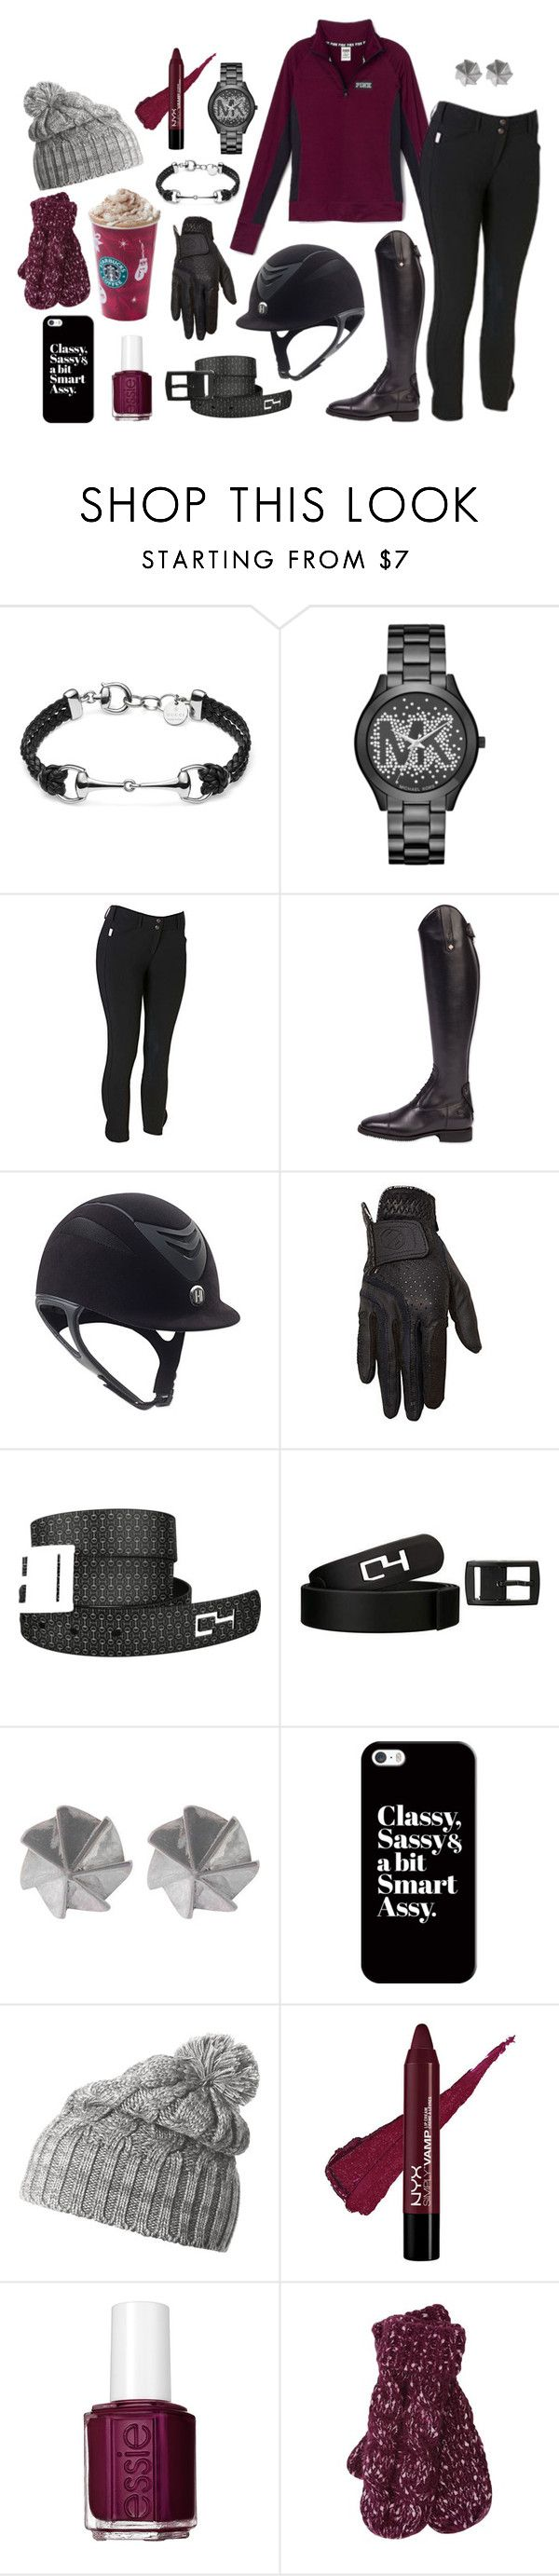 """Winter Berry"" by equestrianartist ❤ liked on Polyvore featuring Gucci, Michael Kors, Victoria's Secret, Edge Only, Casetify, Helly Hansen, Essie and M&Co"